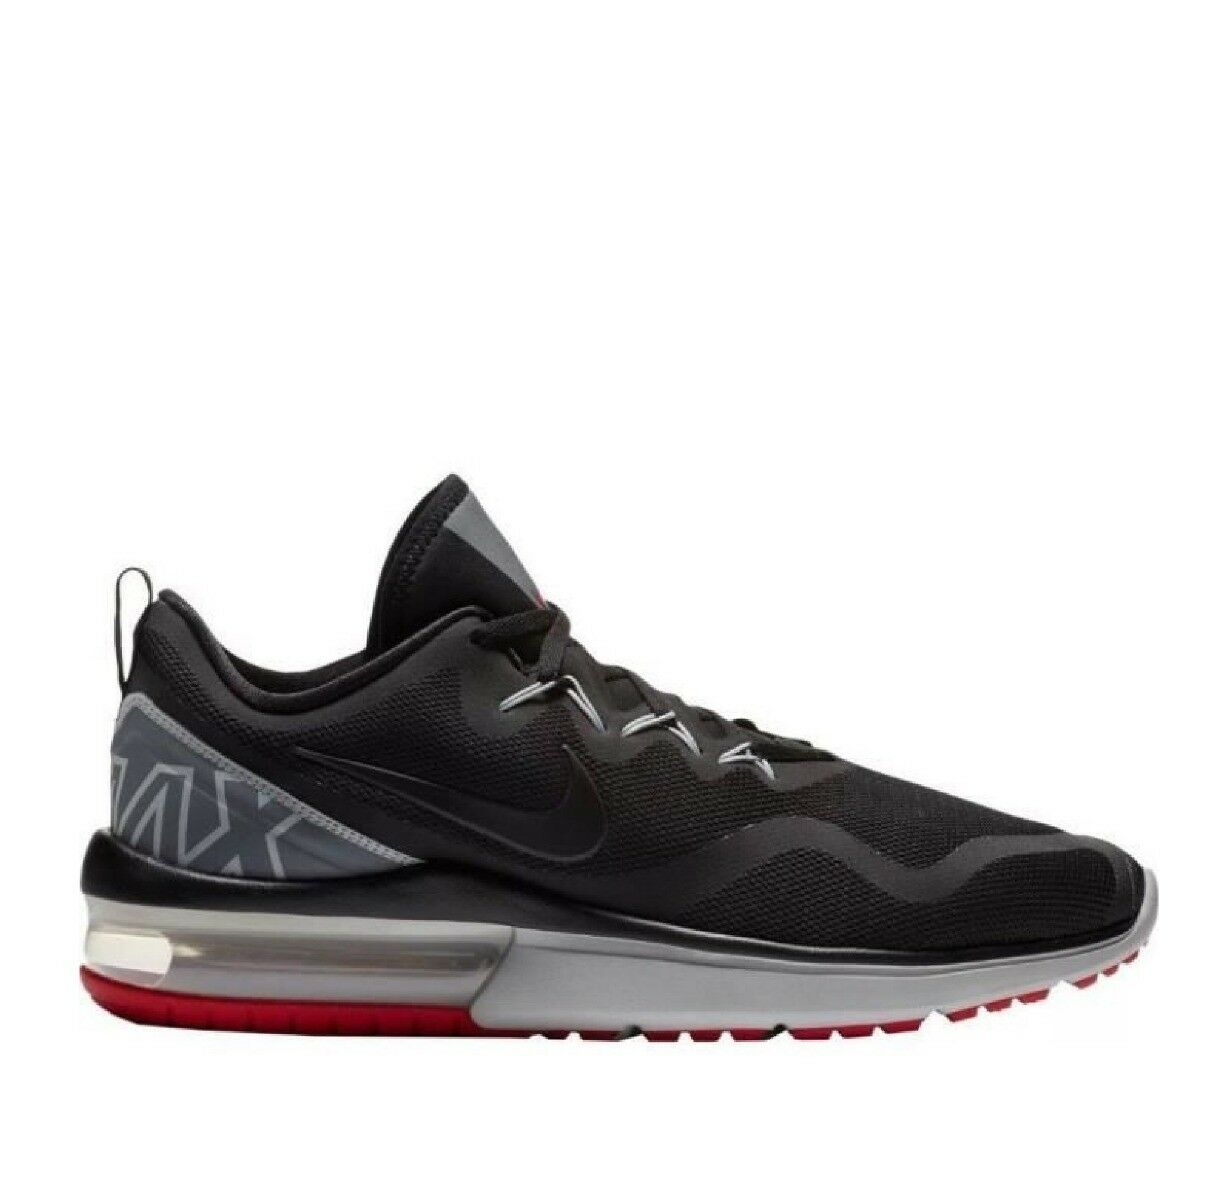 NIke Air Max Fury Mens Trainer shoe Sze 8 9 9.5 Black Red Grey